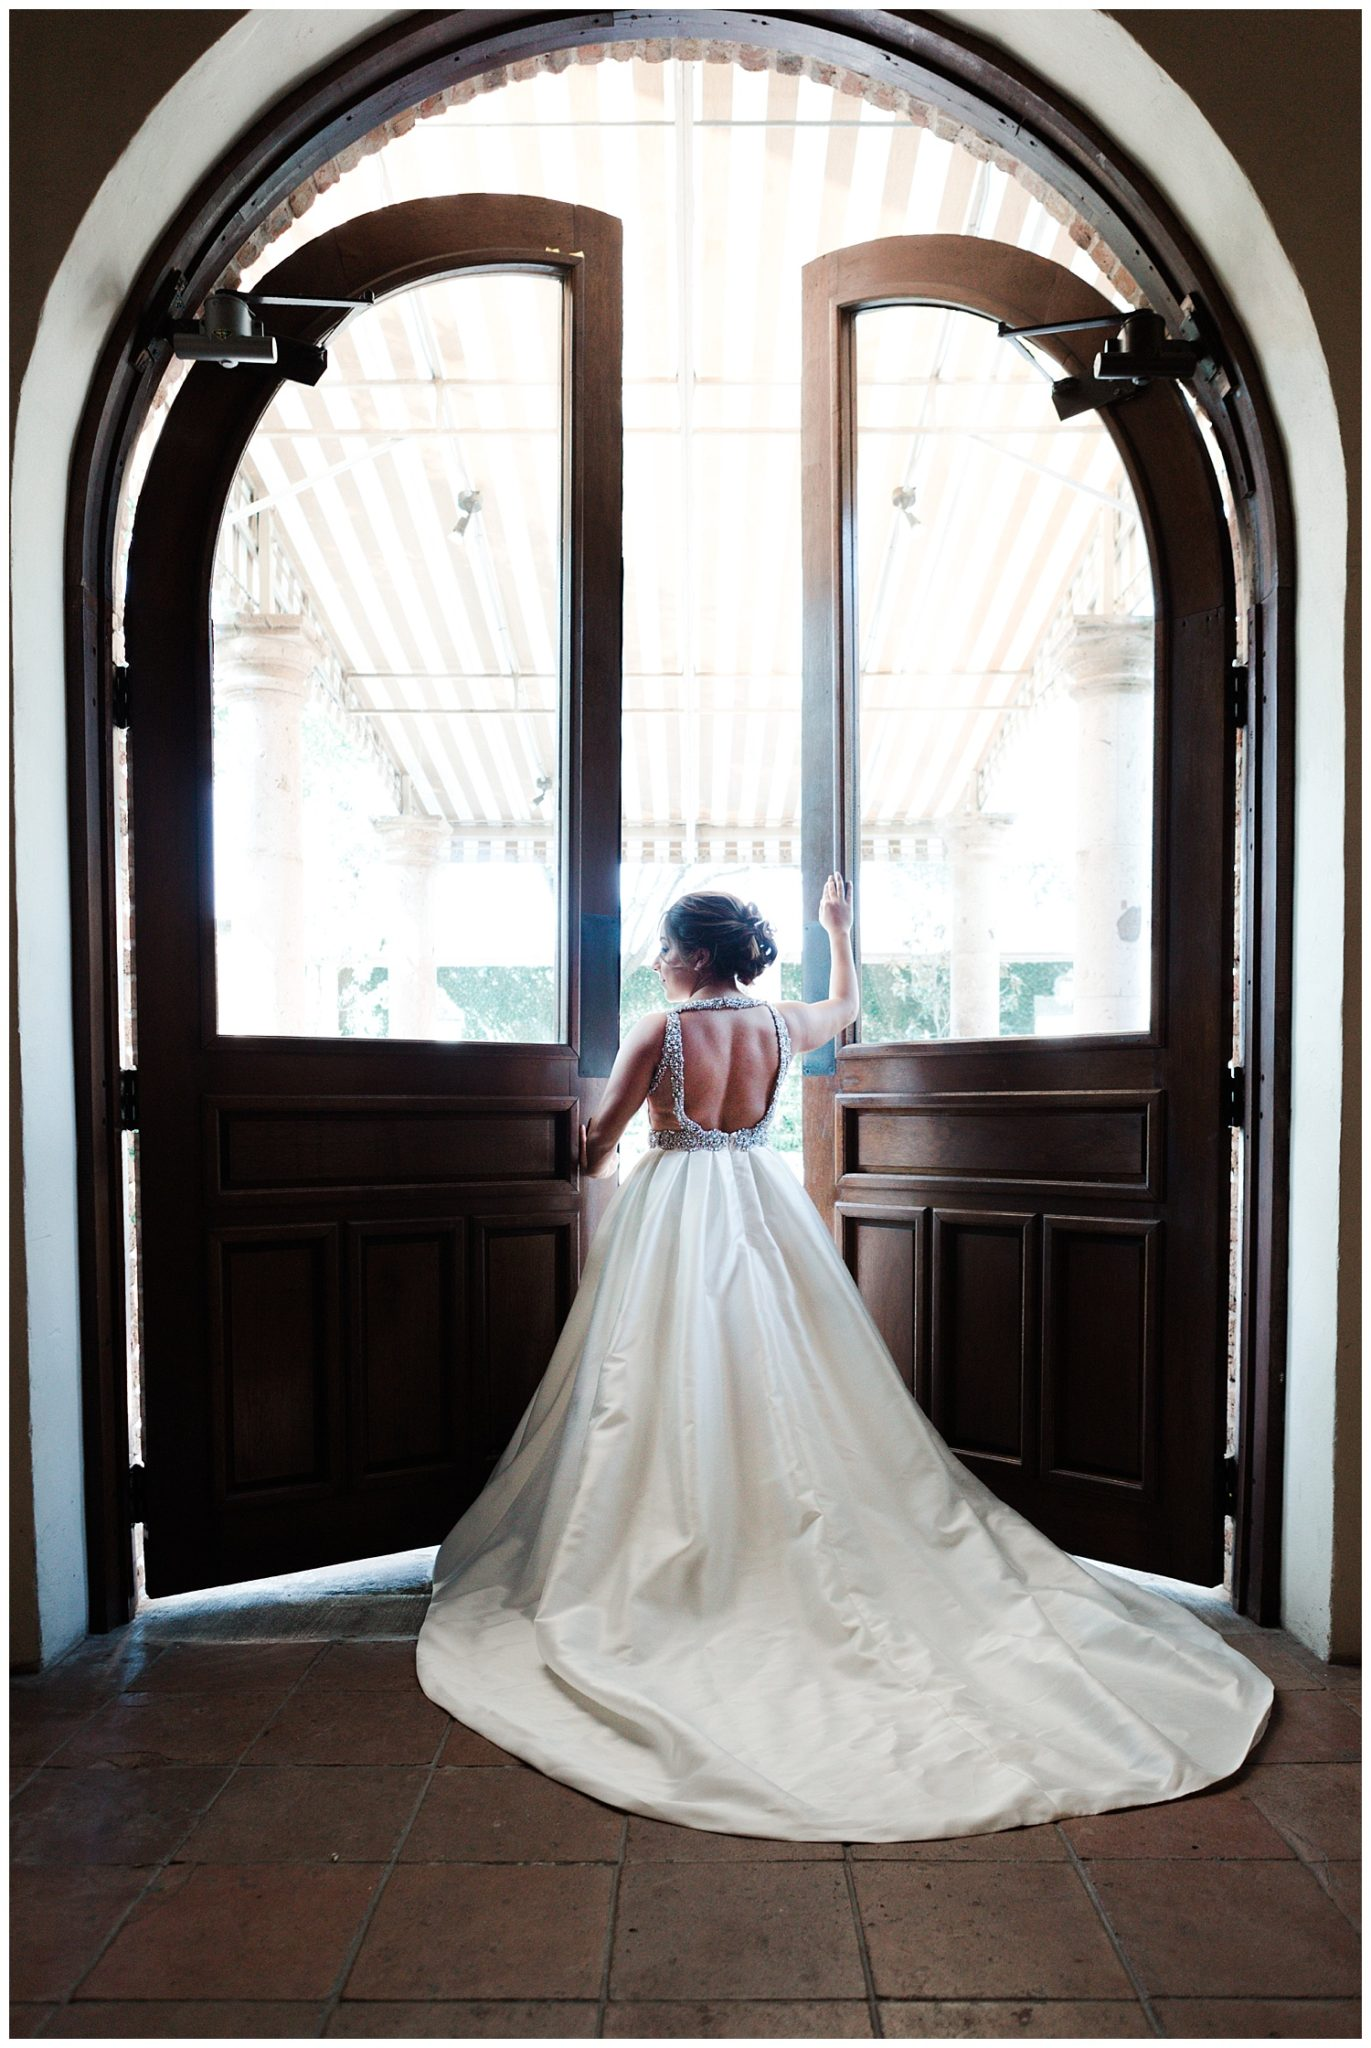 Texas Wedding Photographer   Crystal's Bridals at The Bell Tower on 34th